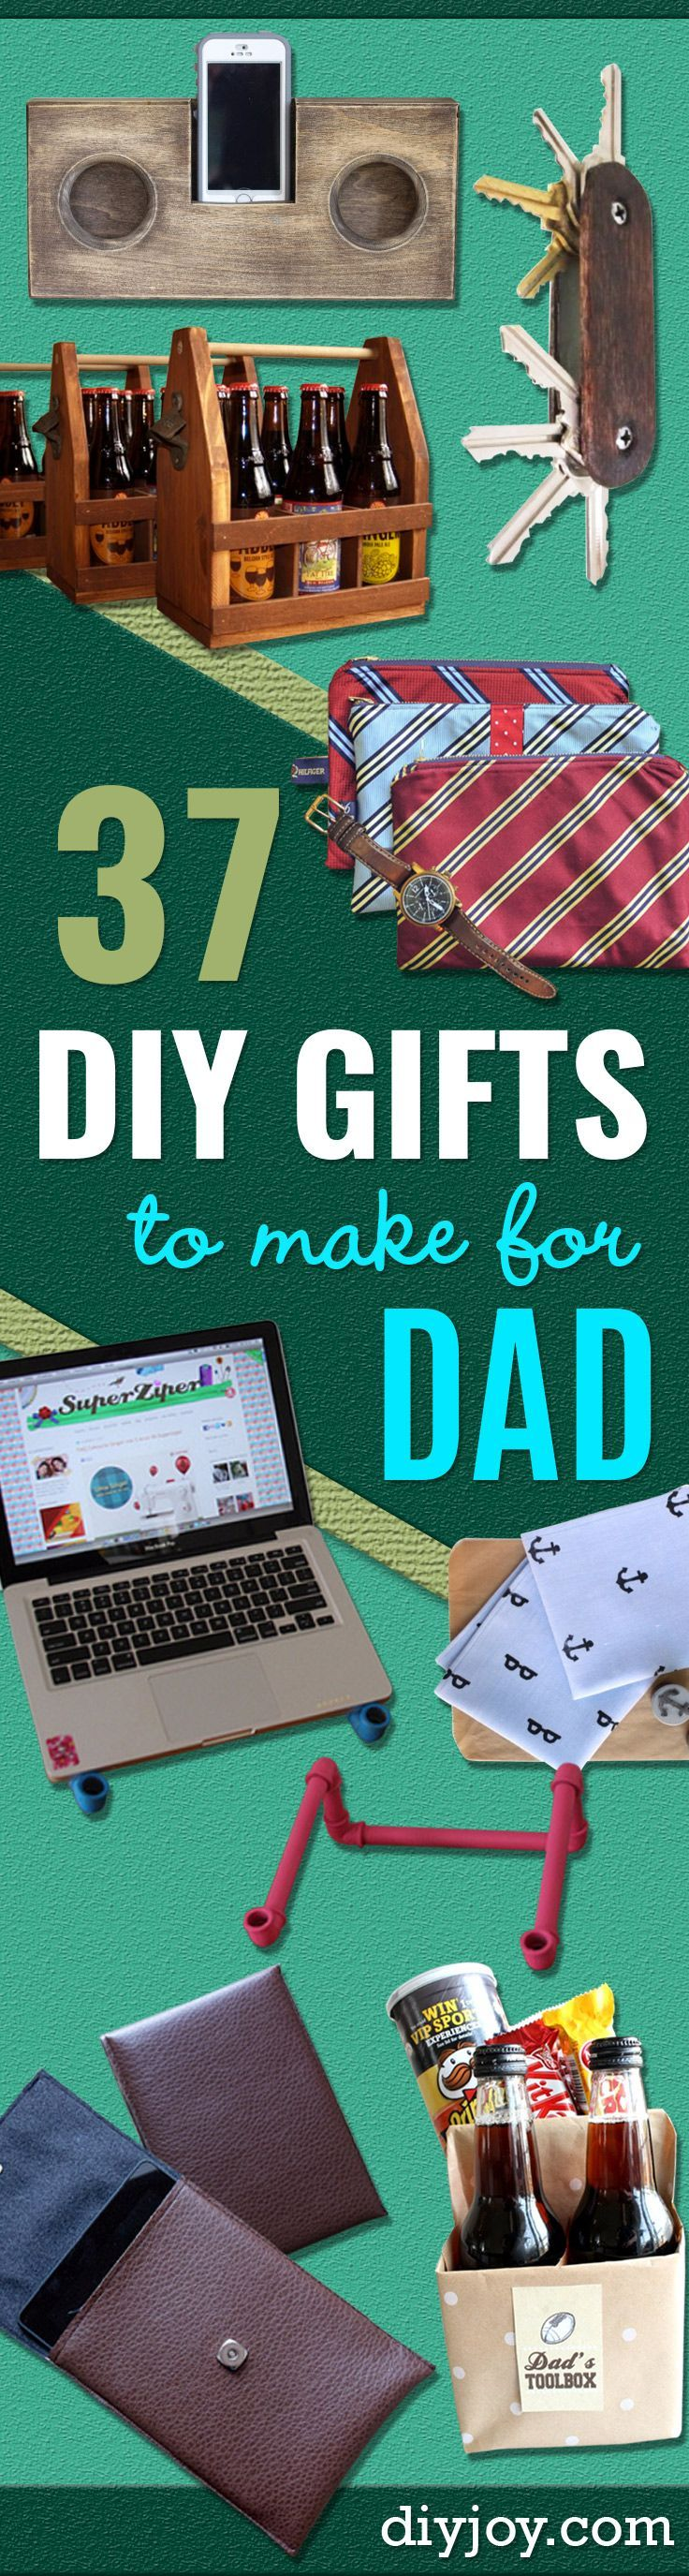 25 best ideas about diy gifts for dad on pinterest dad for Thoughtful gifts for dad from daughter